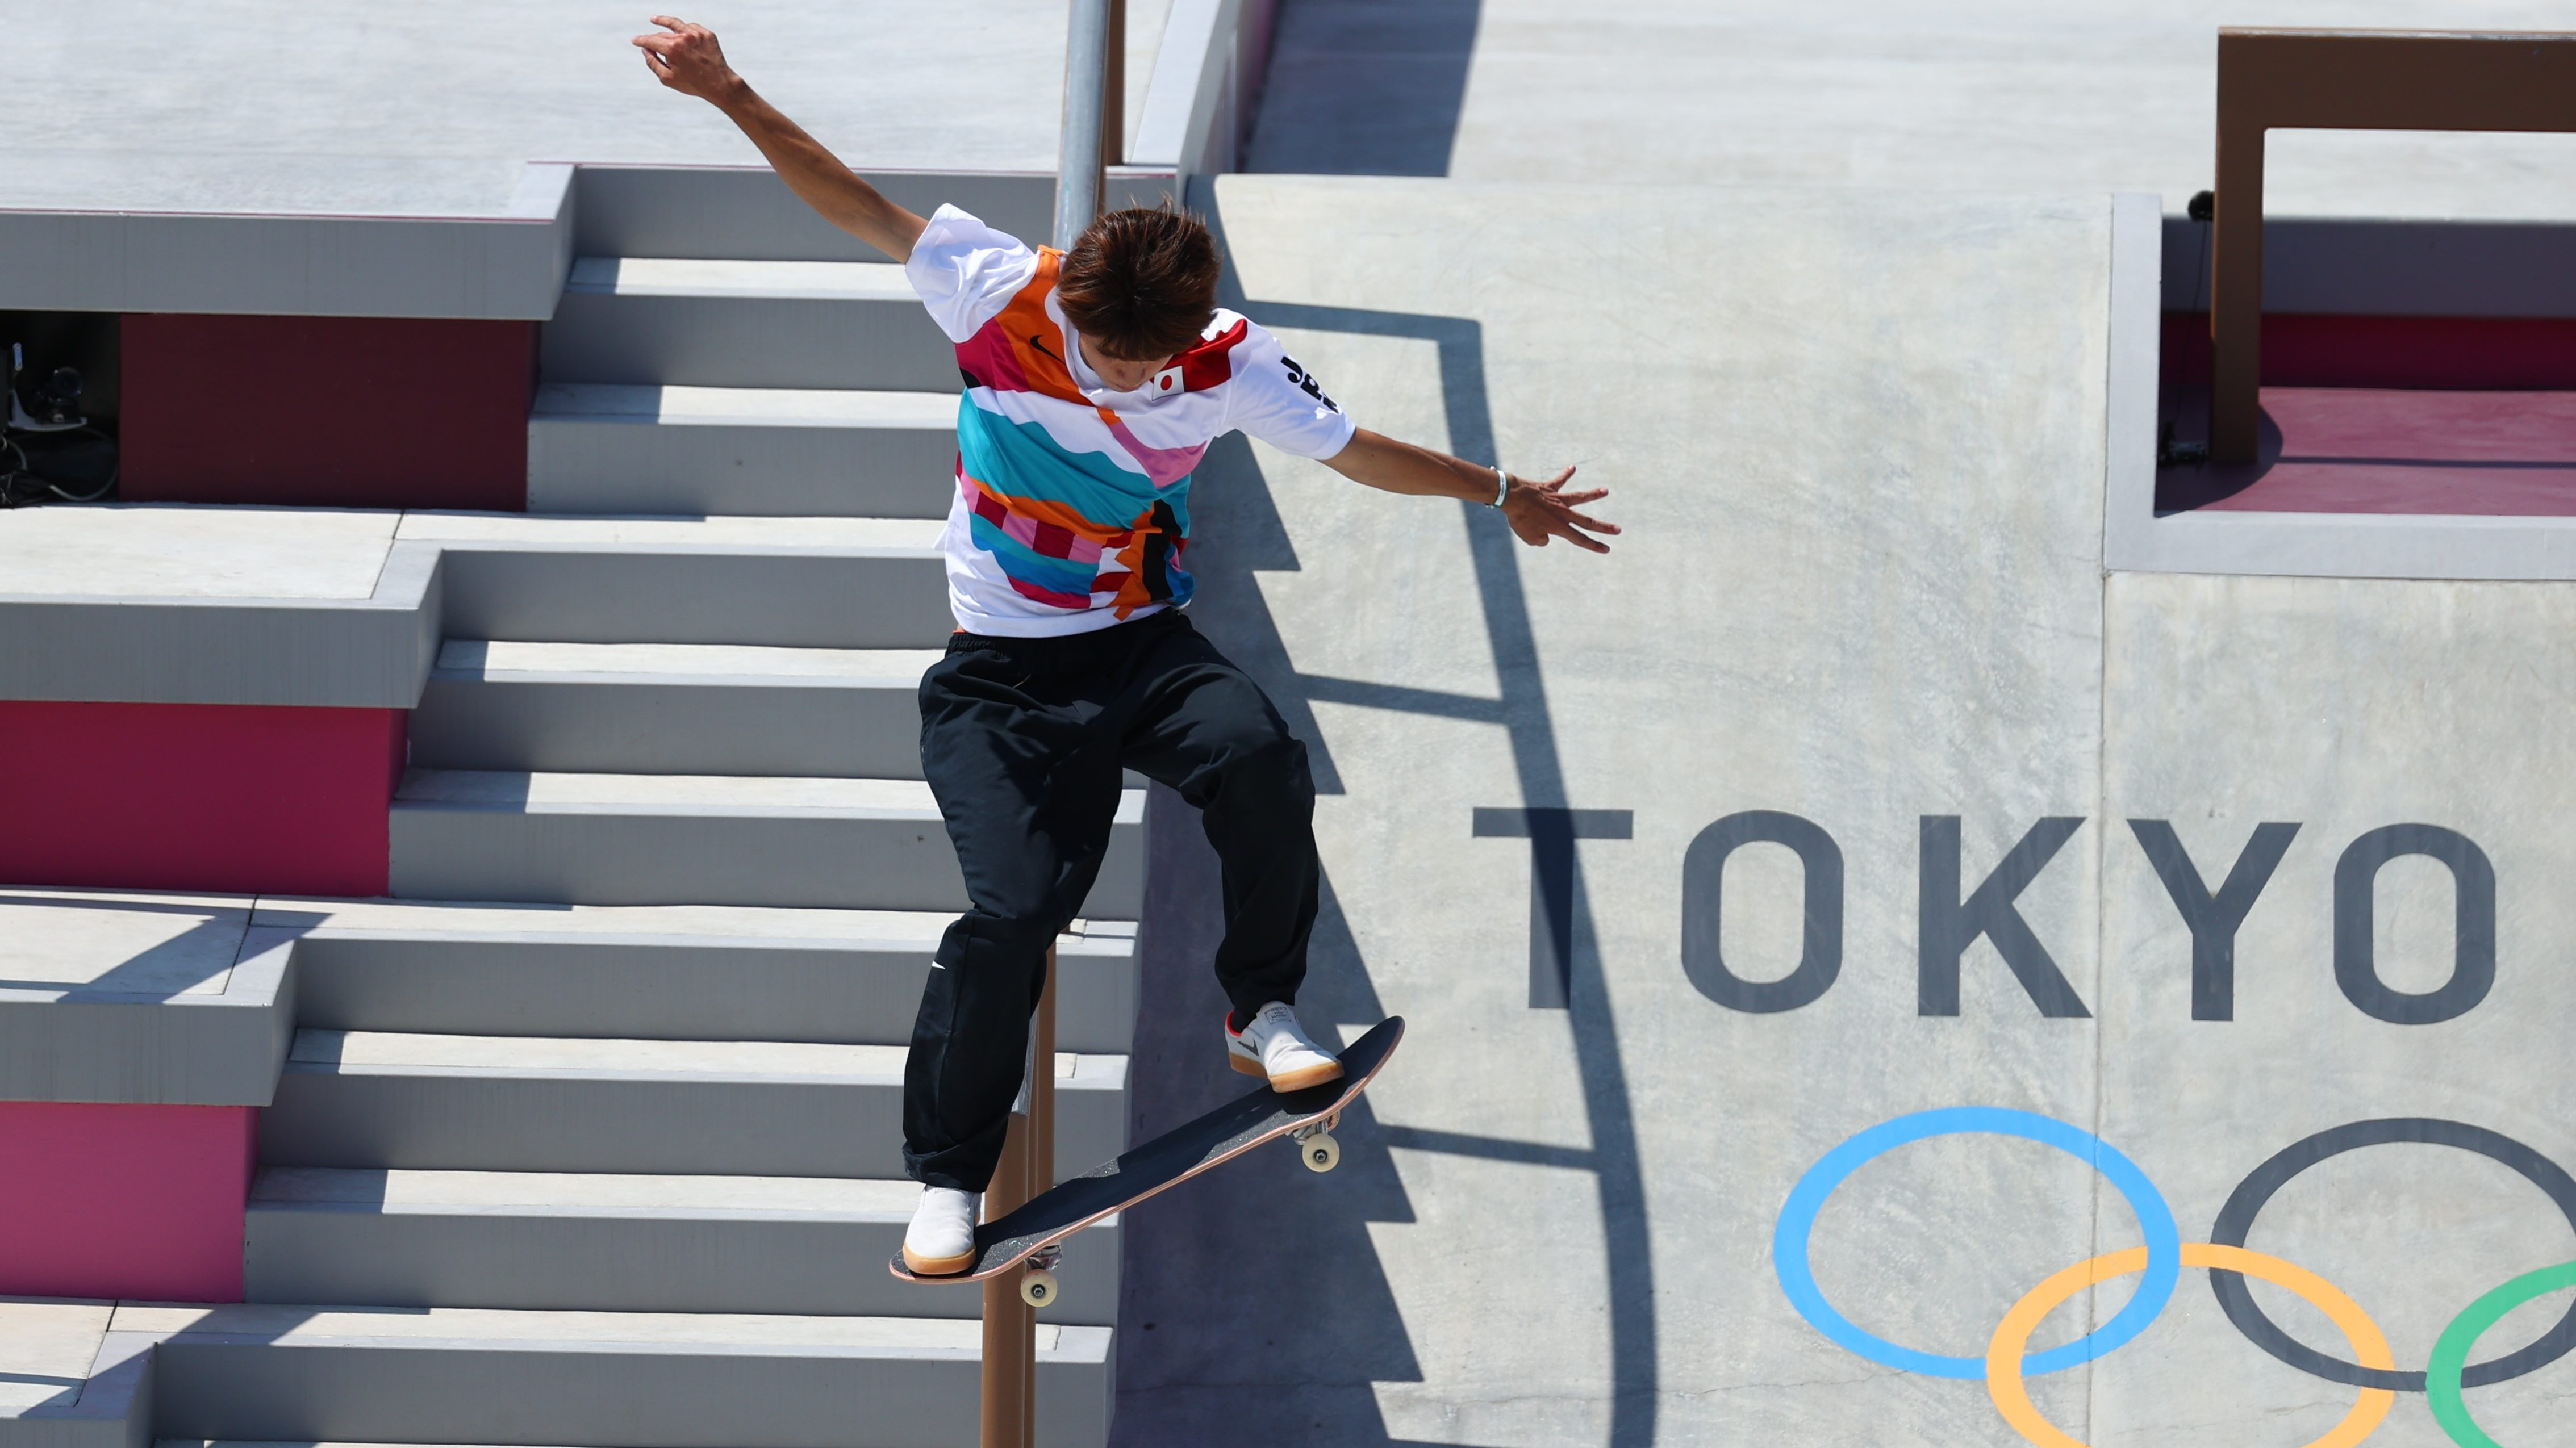 Yuto Horigome of Japan in action on the street skating course at the Olympics